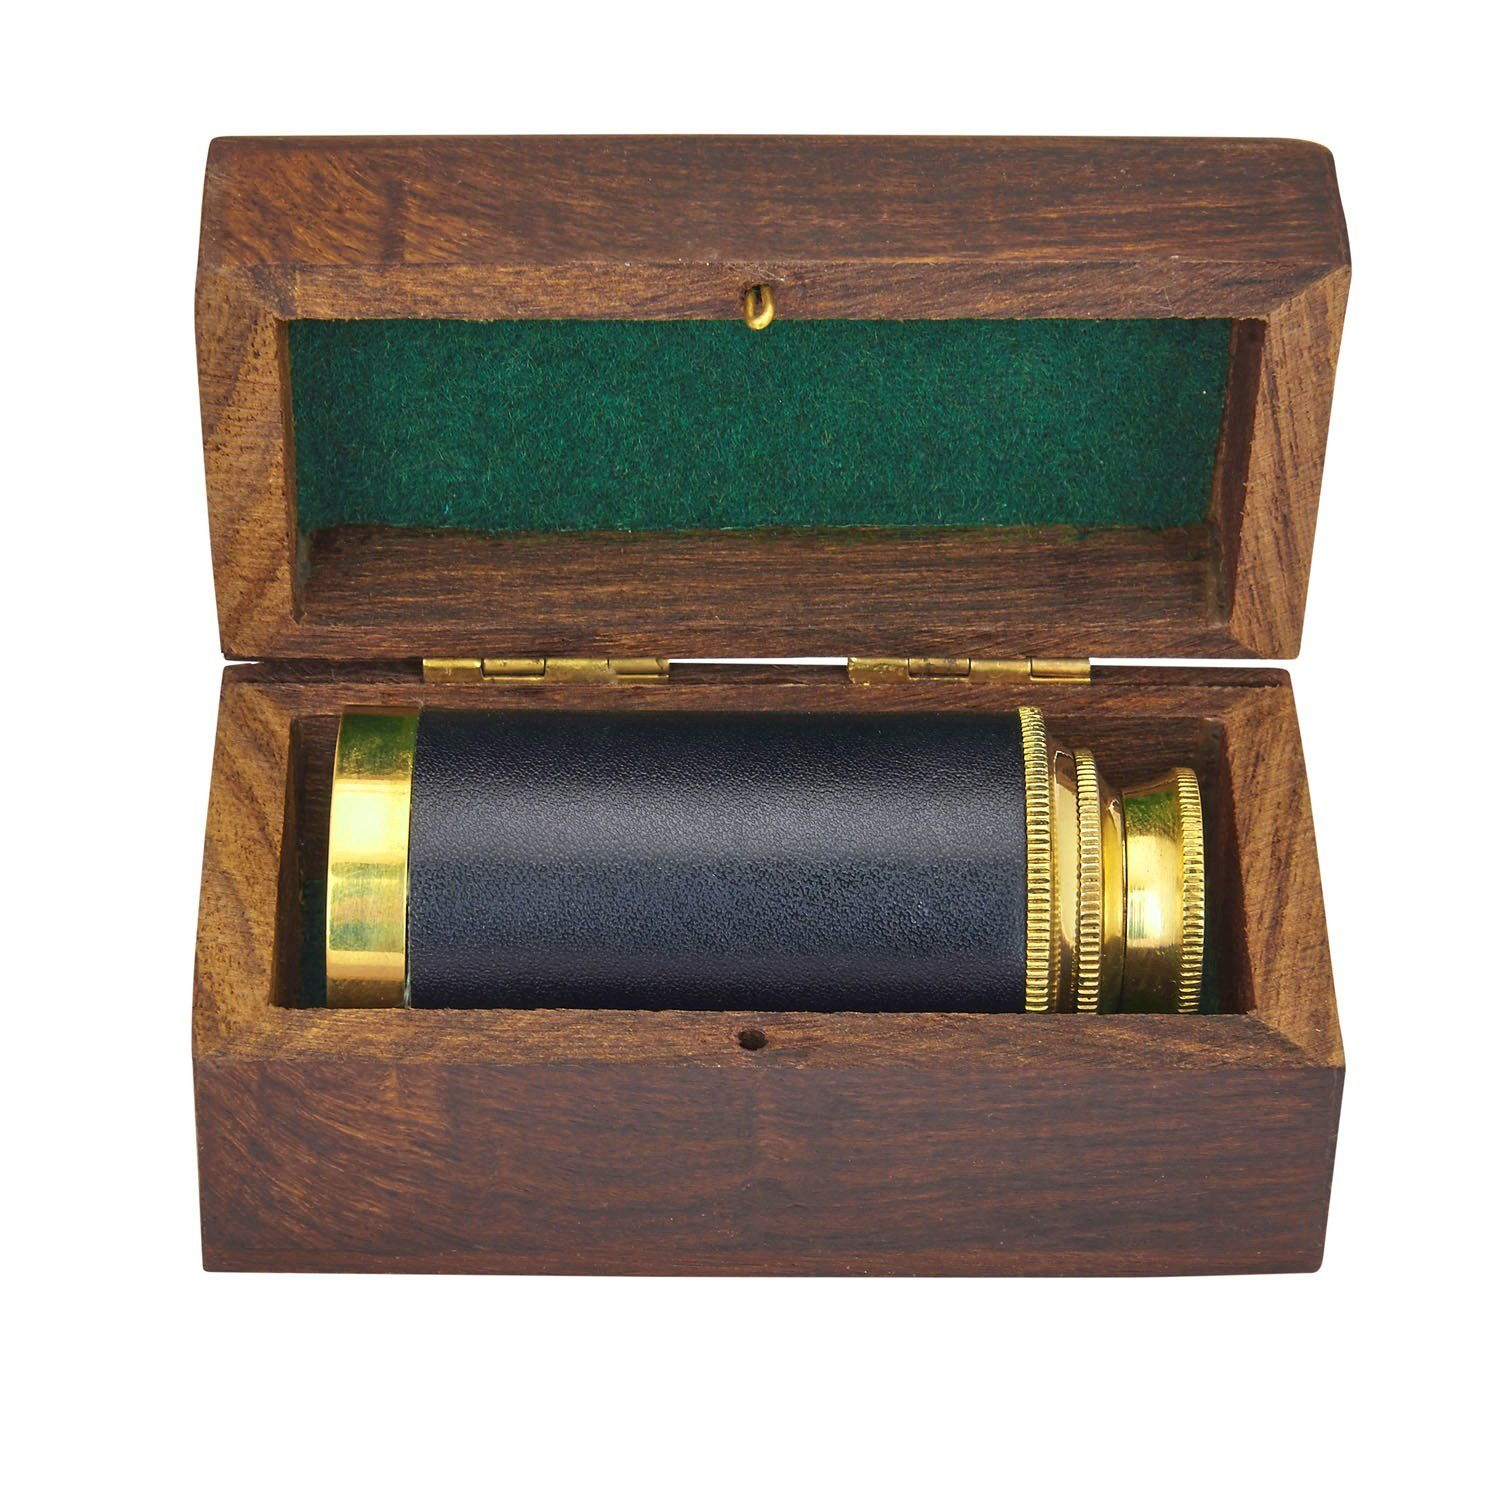 6 Inch Vintage Antique Handheld Adjustable Zoomable Monocular Nautical Brass Telescope Copper Finish In Hand Crafted Rosewood Box Navy Pirate Navigation Spyglass Pirate Accessory Gifts For Kids